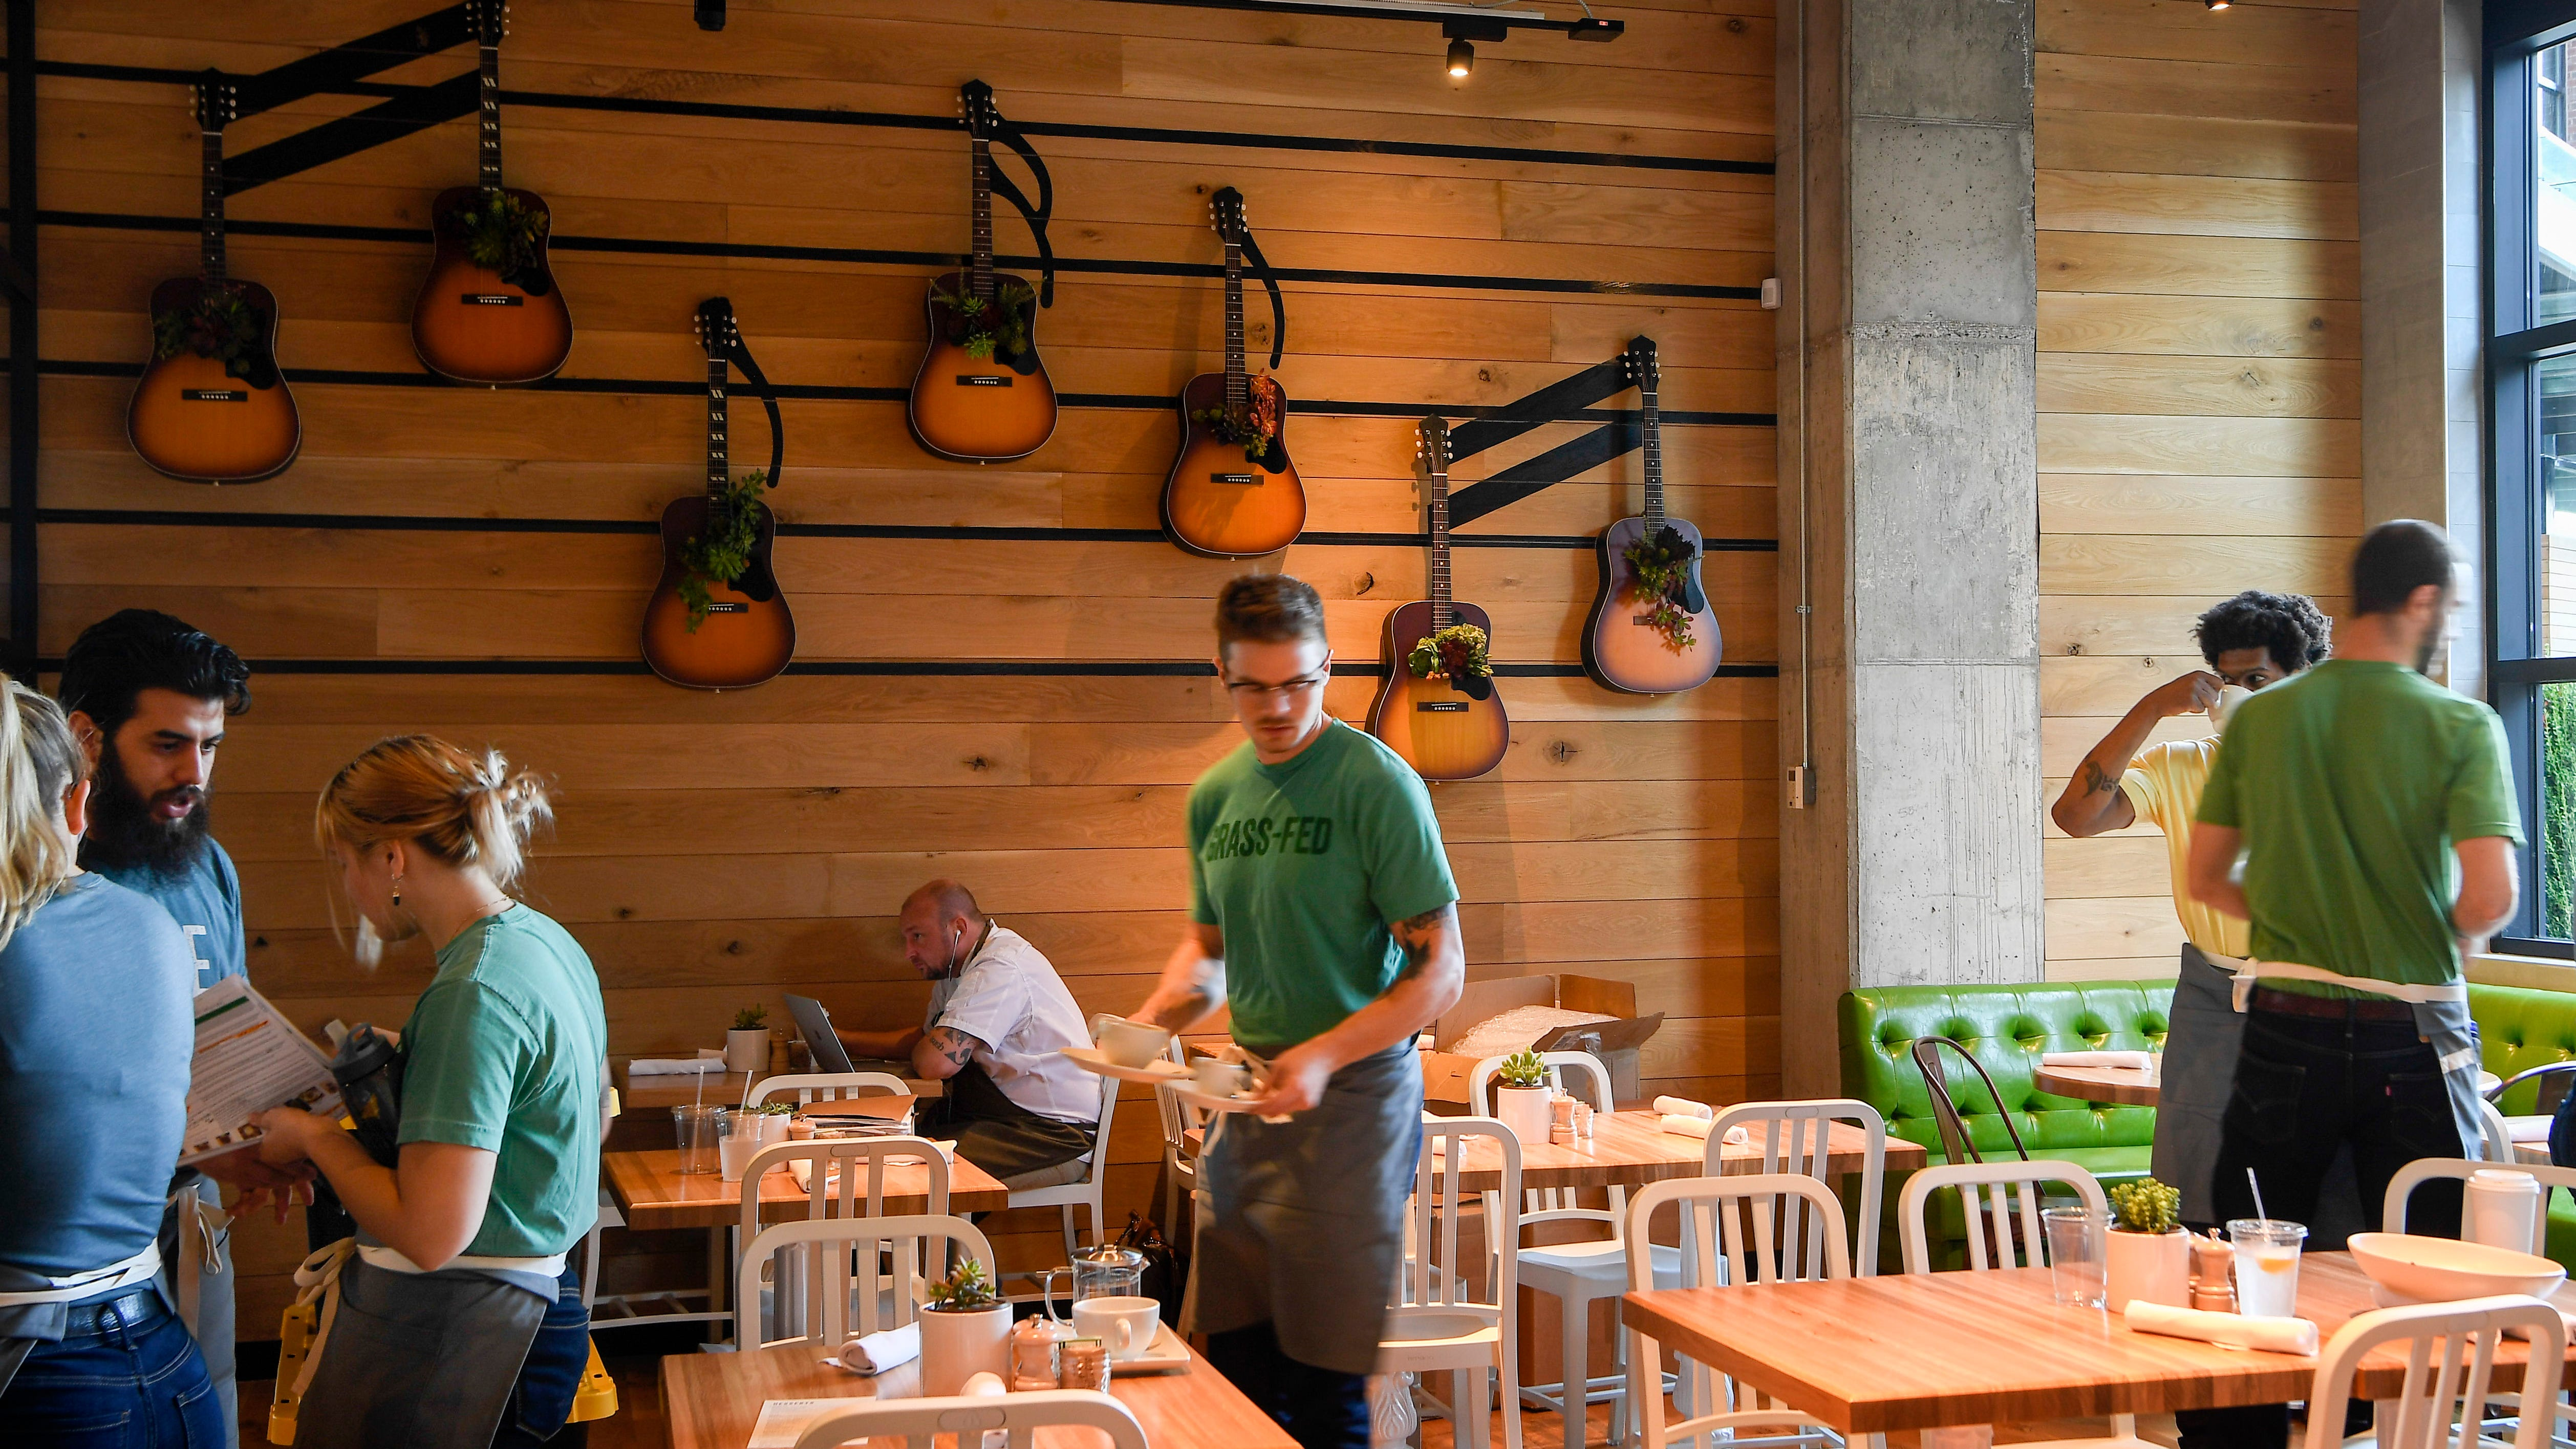 Workers are trained at the new True Food Kitchen in Nashville on Thursday, Sept. 20, 2018. This is the company's 24th location in the country.